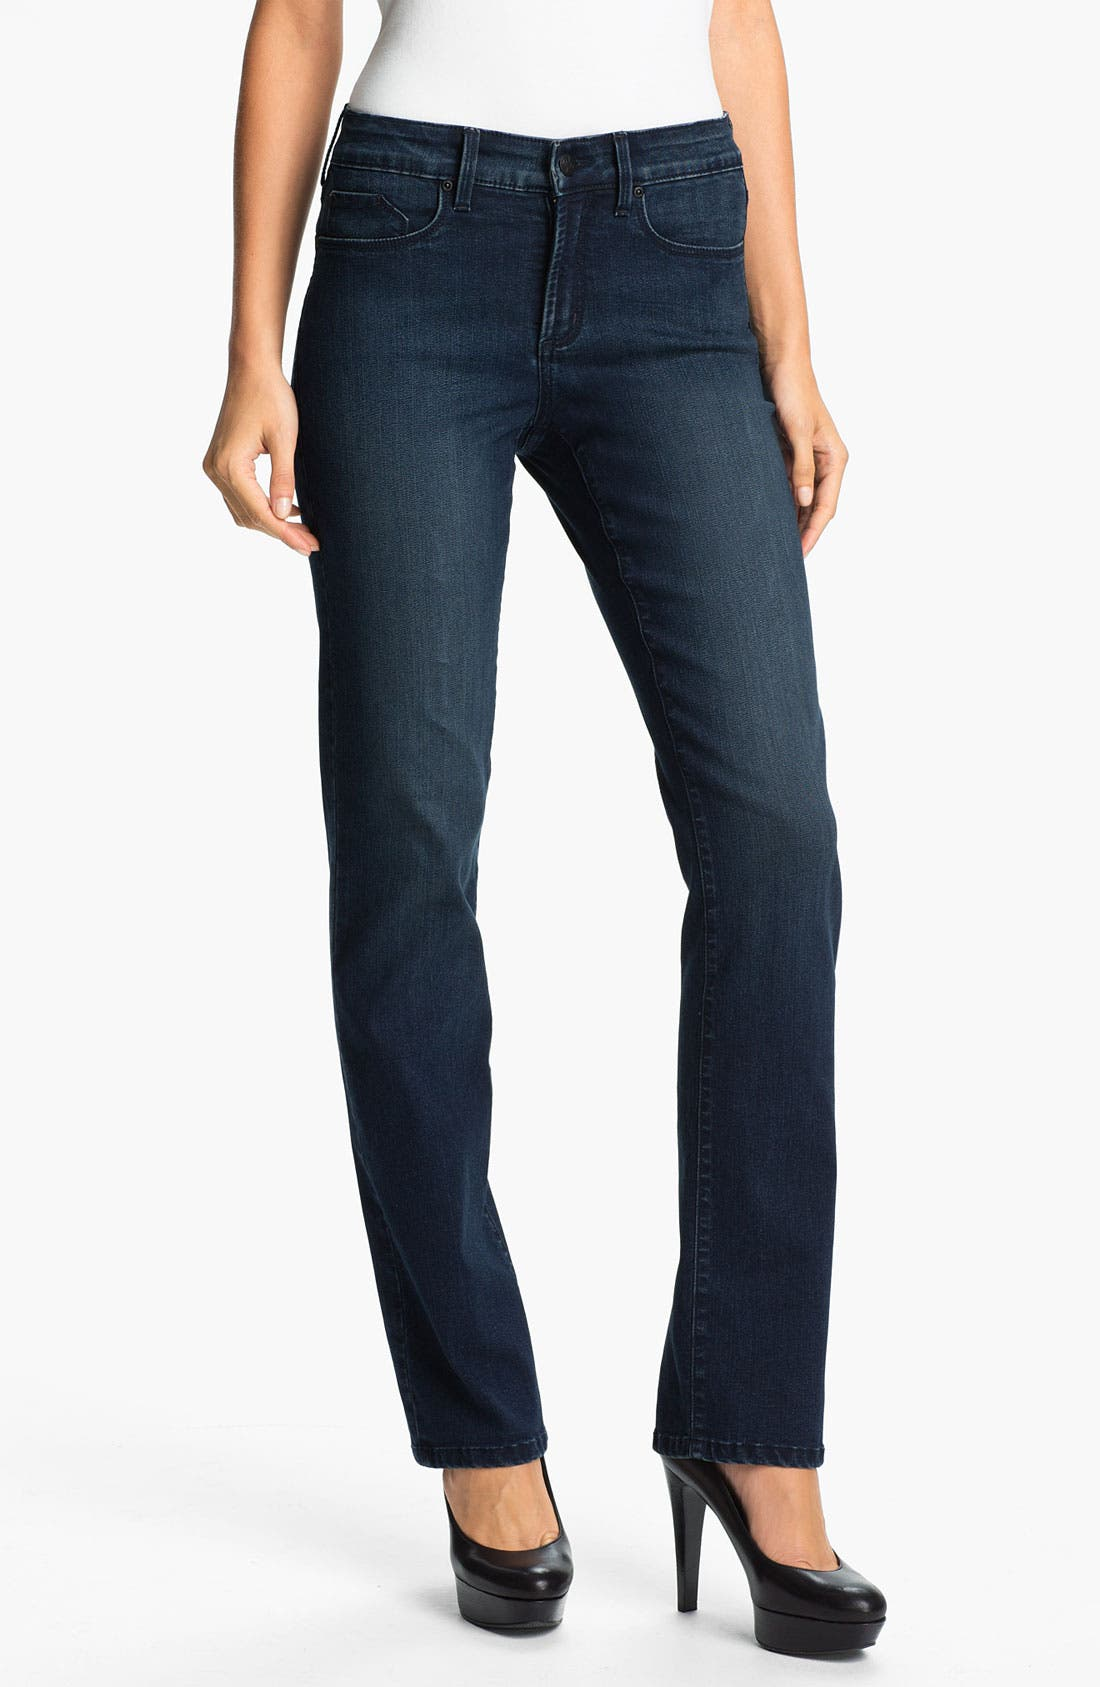 Alternate Image 1 Selected - NYDJ 'Marilyn' Straight Leg Jeans (Petite)